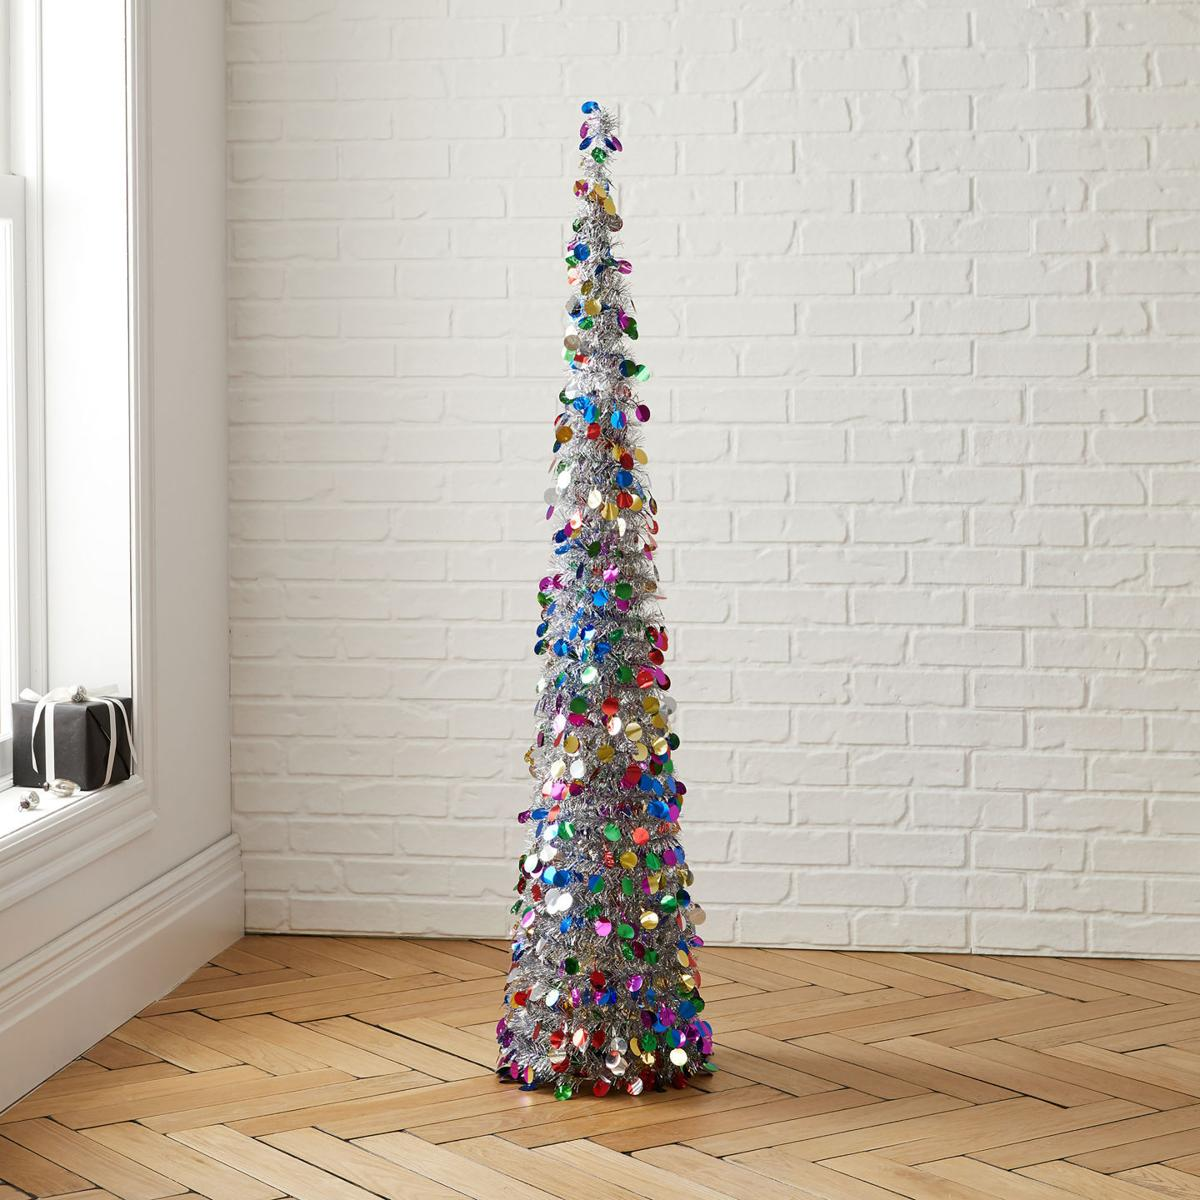 Glam holiday décor that gets the party started